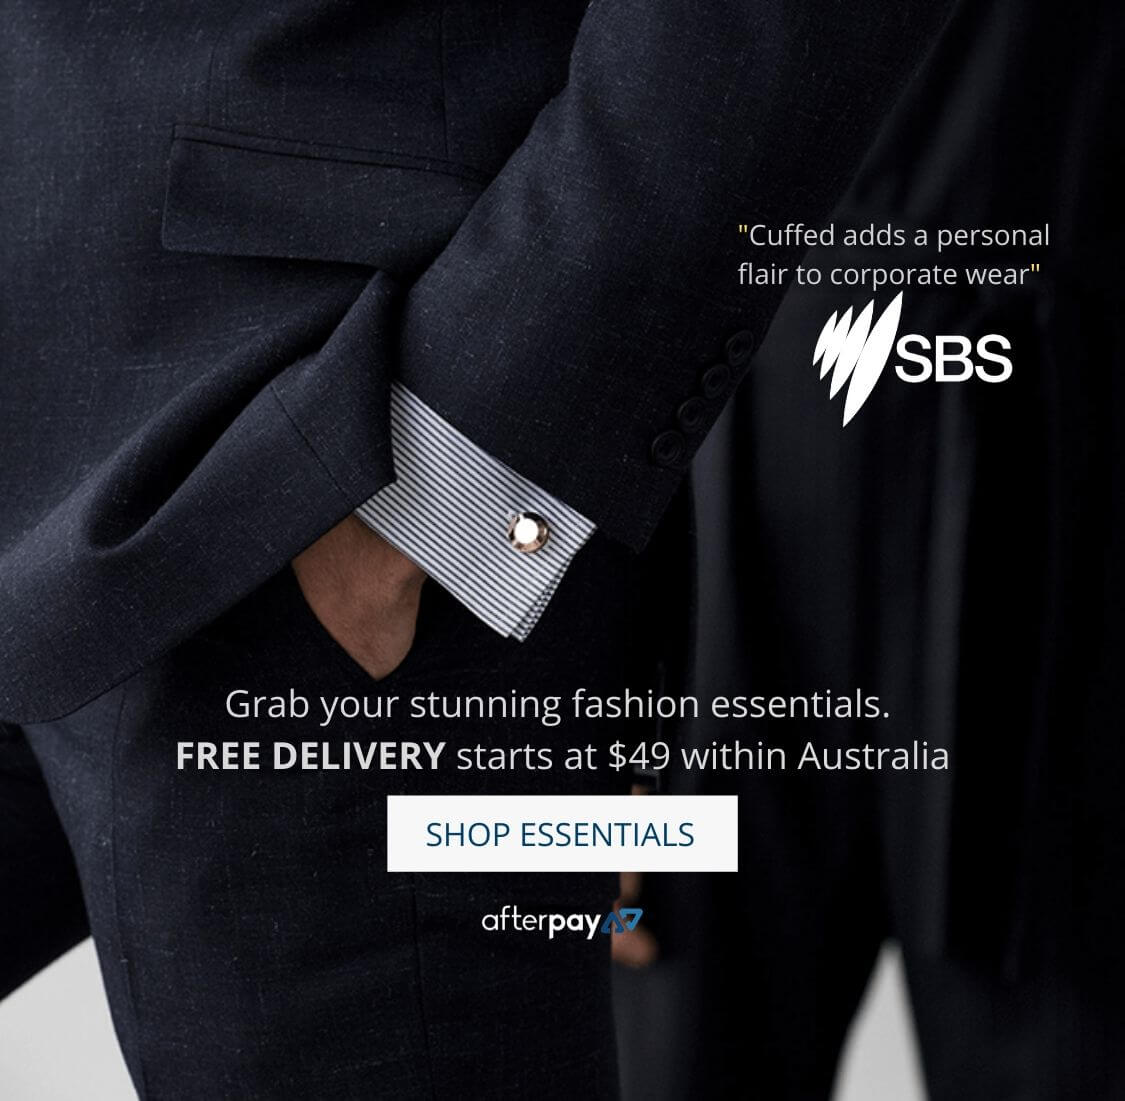 Buy Cufflinks on Cuffed Australia. Shop mens cufflinks, watch winder boxes, tie clips, cufflinks, socks, bracelets for men and gifts for him on Cuffed.com.au. Grab your stunning fashion essentials with free delivery on orders $49+ within Australia.